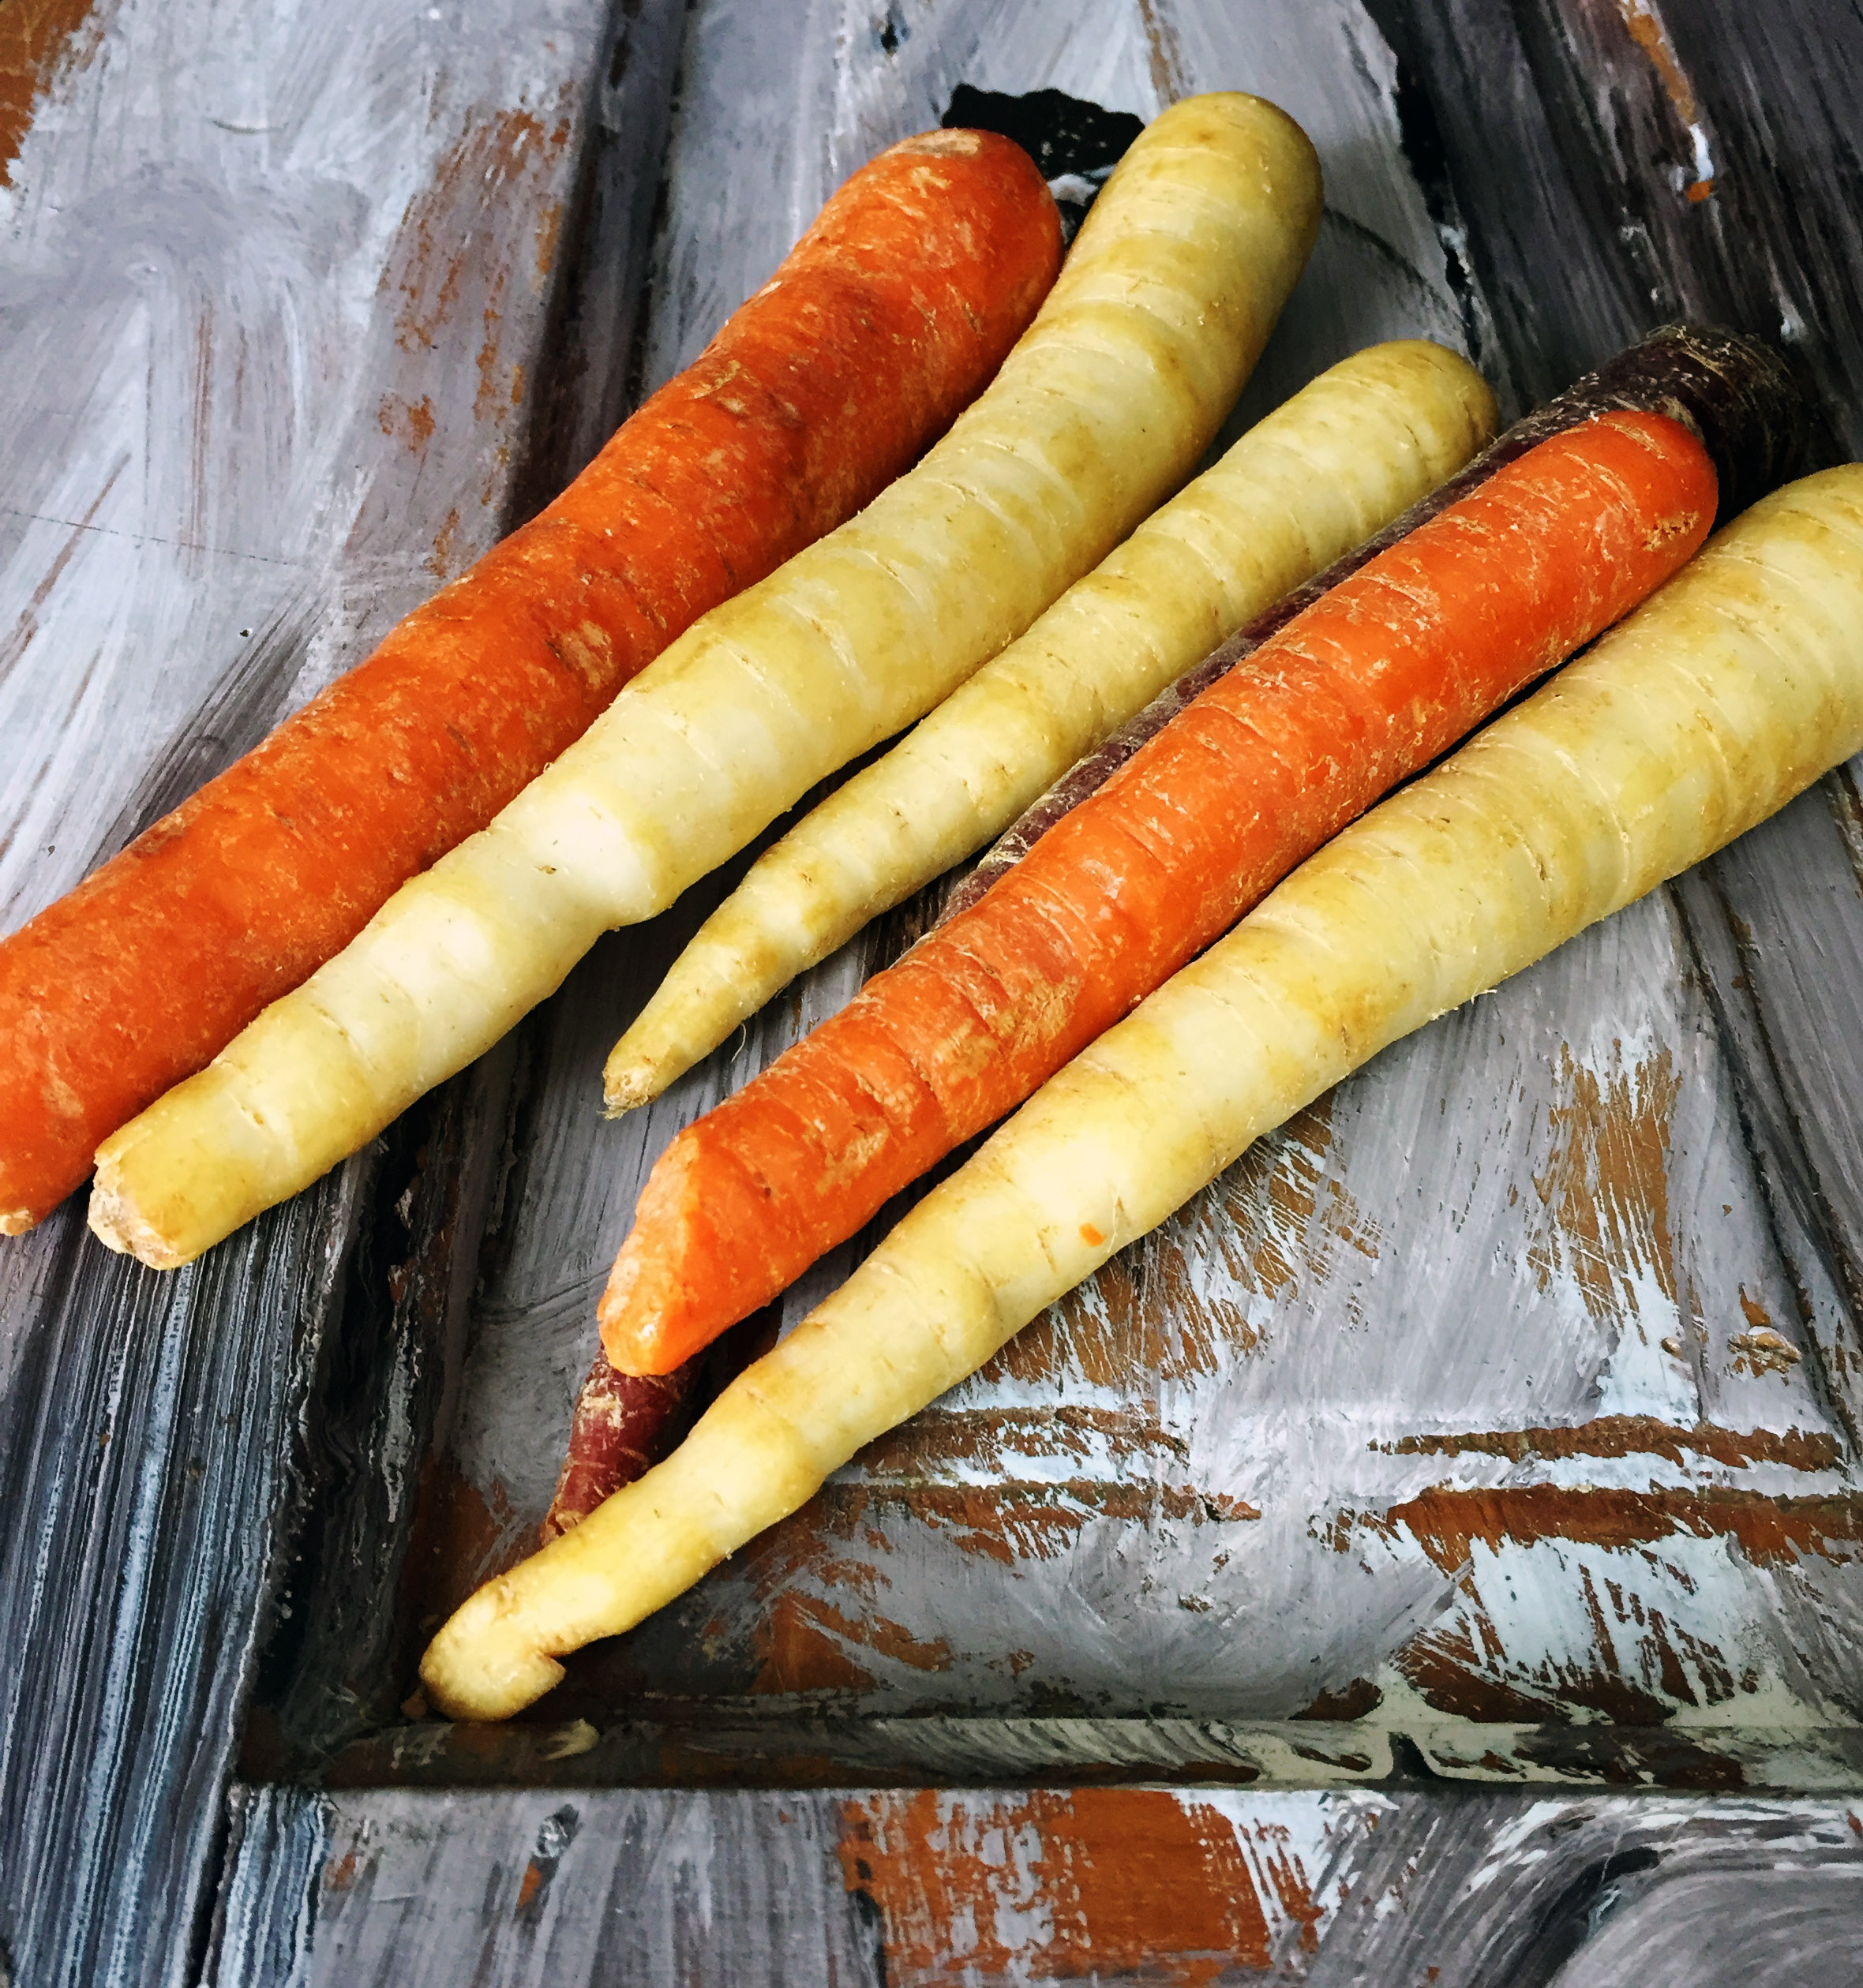 1. Take medium carrots, chop them into 1/3 pieces, and place into boiling water. Boil for 8-10 minutes until soft enough for a knife to pierce through the carrot.